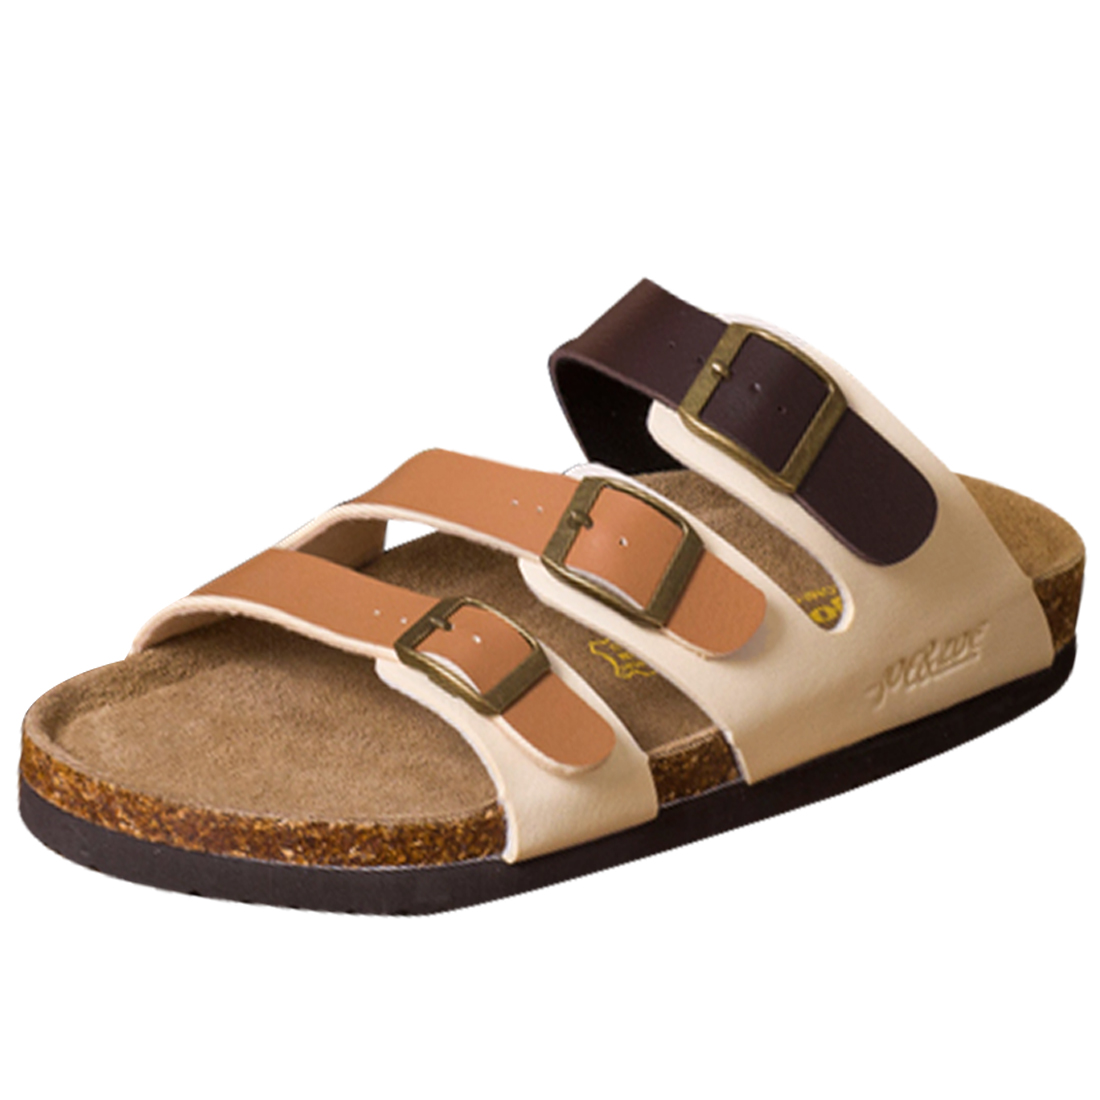 Men Light Coffee Brown White 3 Buckles Slide Sandals US 8